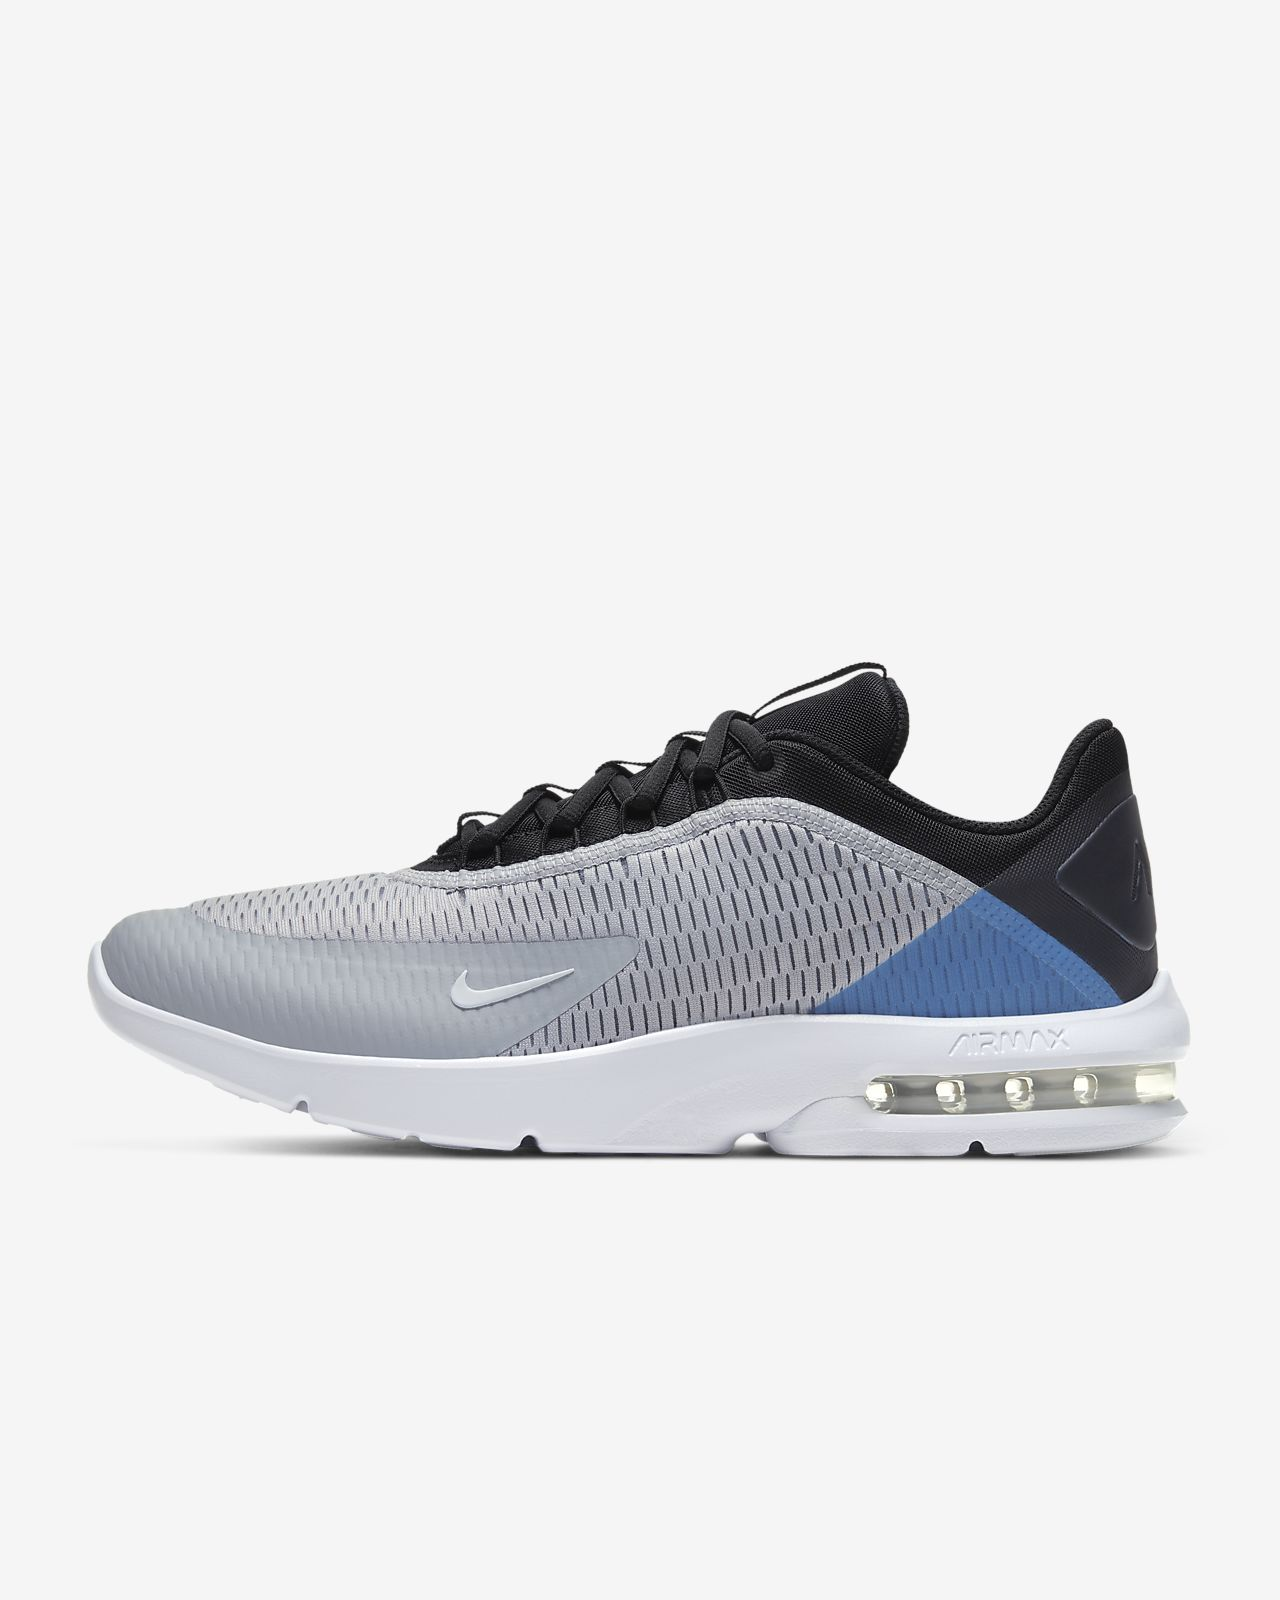 Nike Air Max Axis Men's Shoe. Nike NL